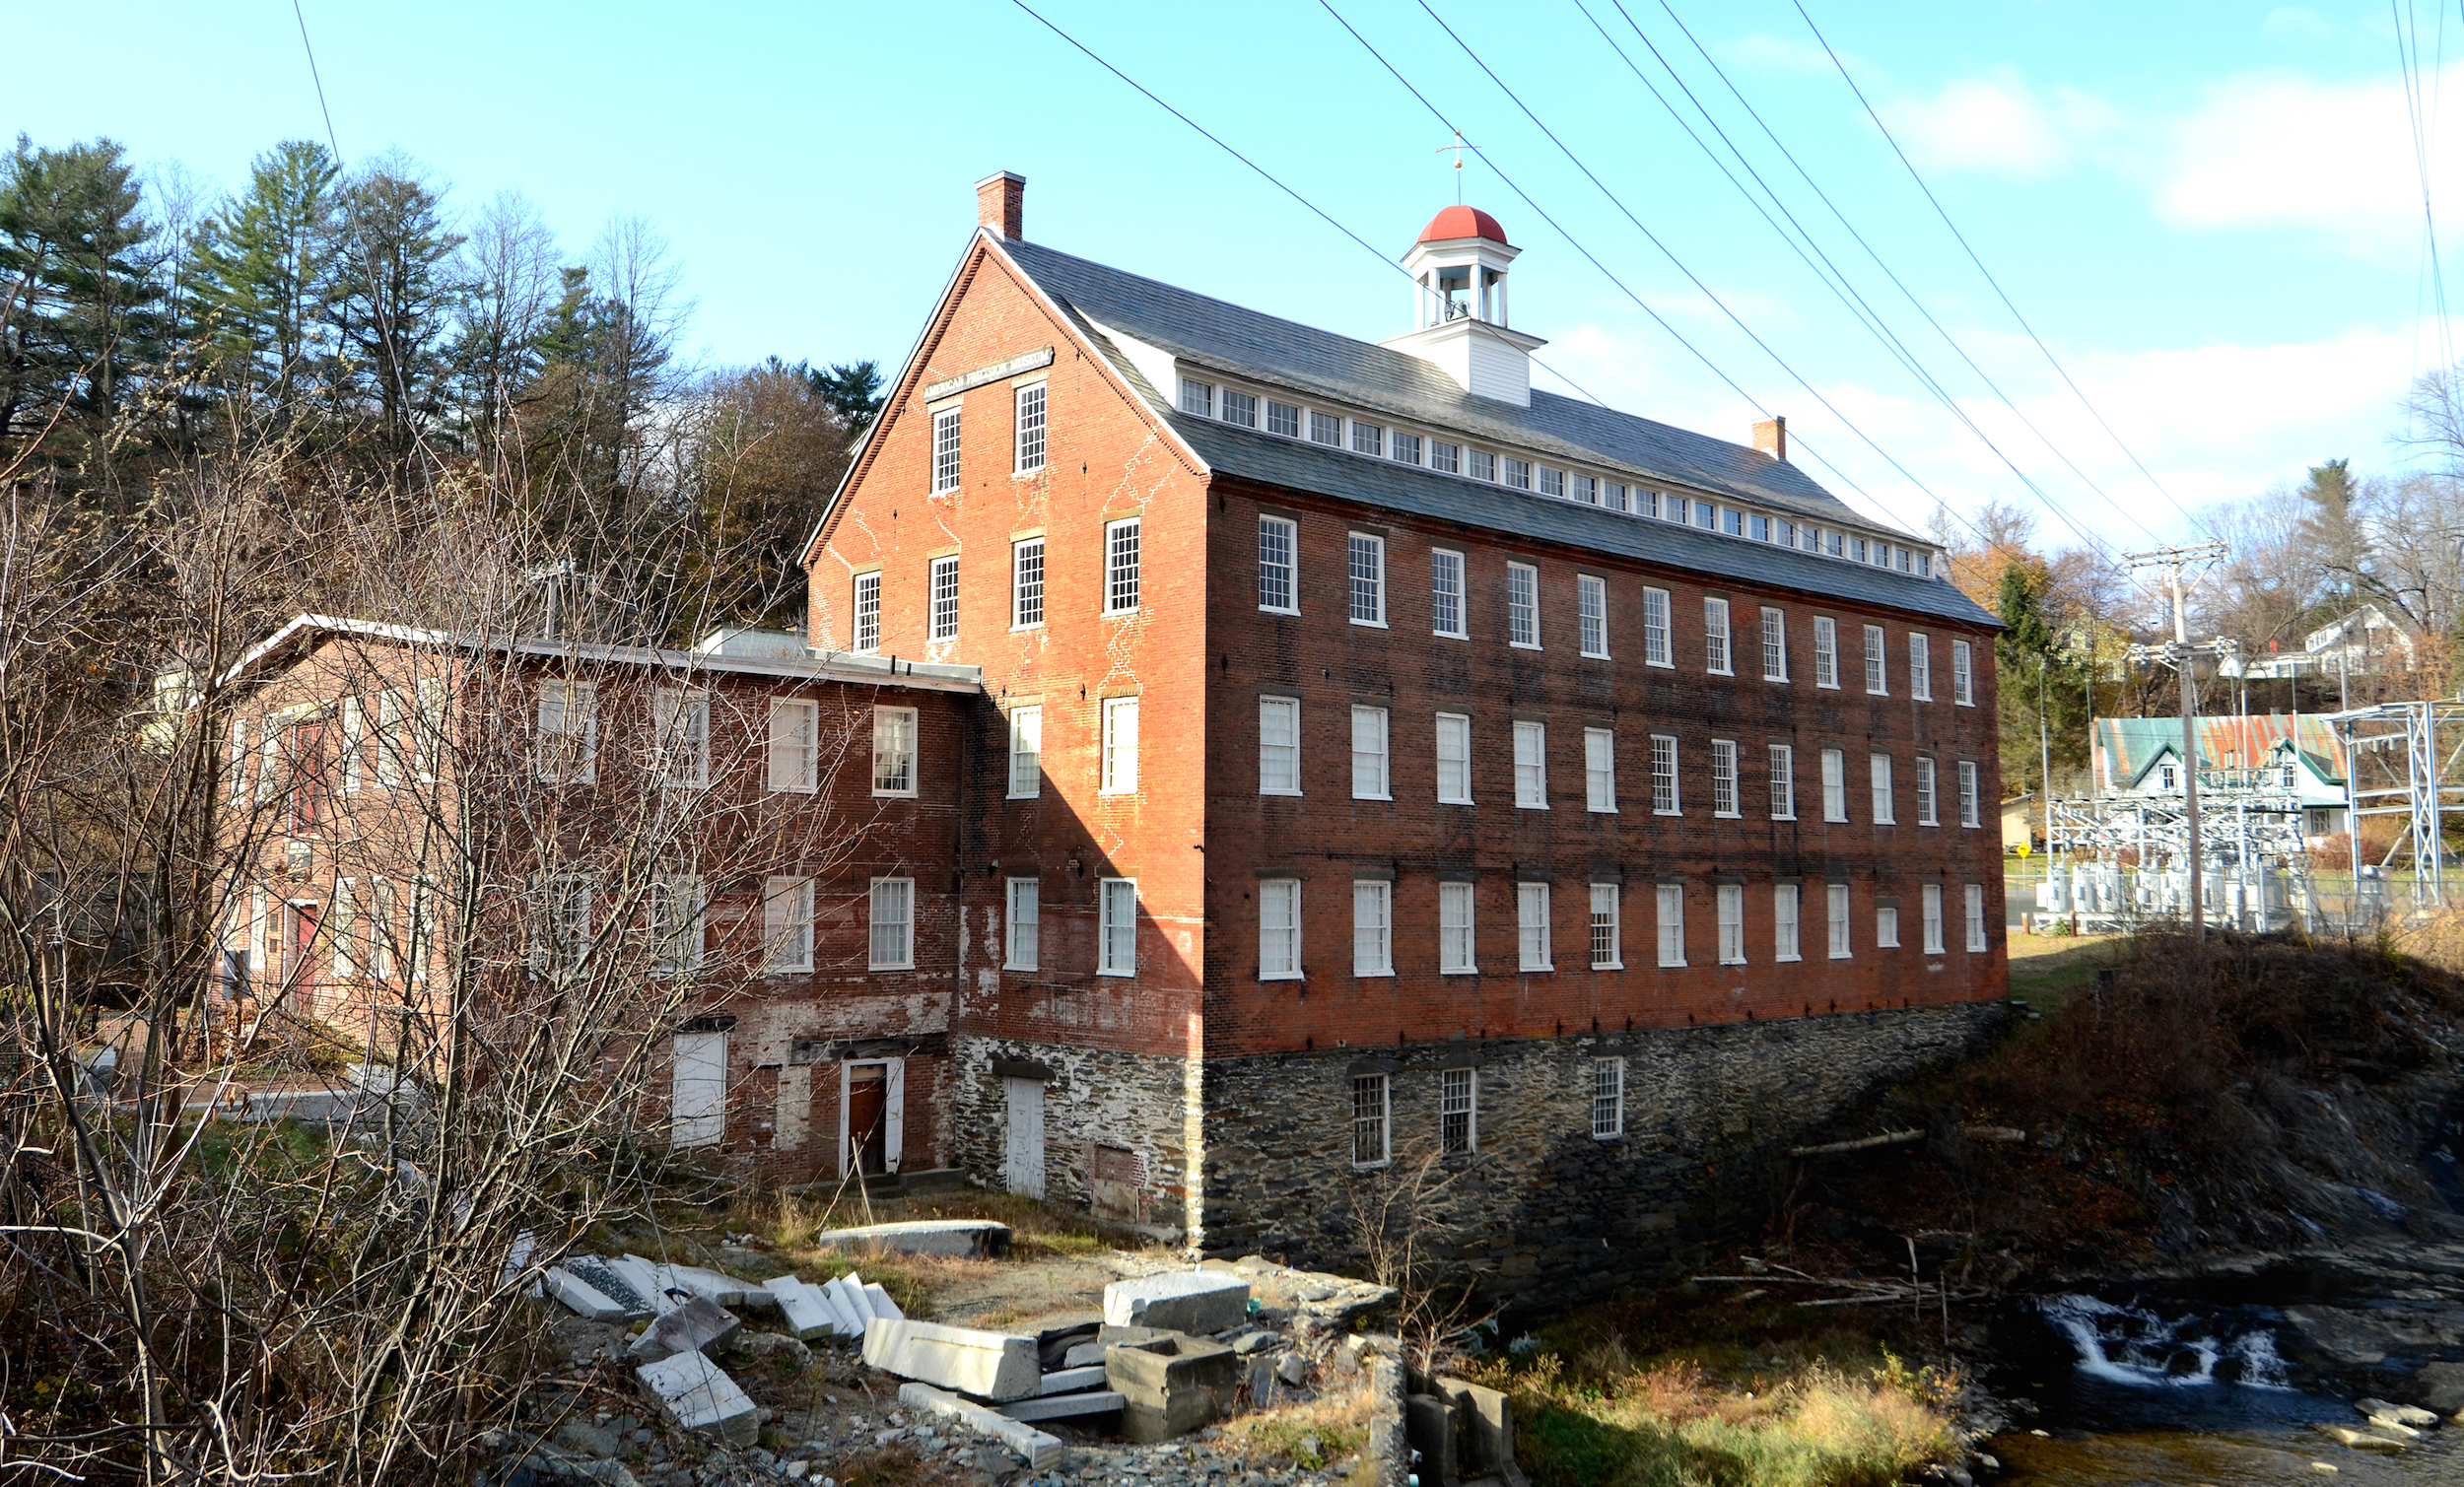 The Robbins and Lawrence Armory has sat on the Bank of the Mill Brook since 1846.